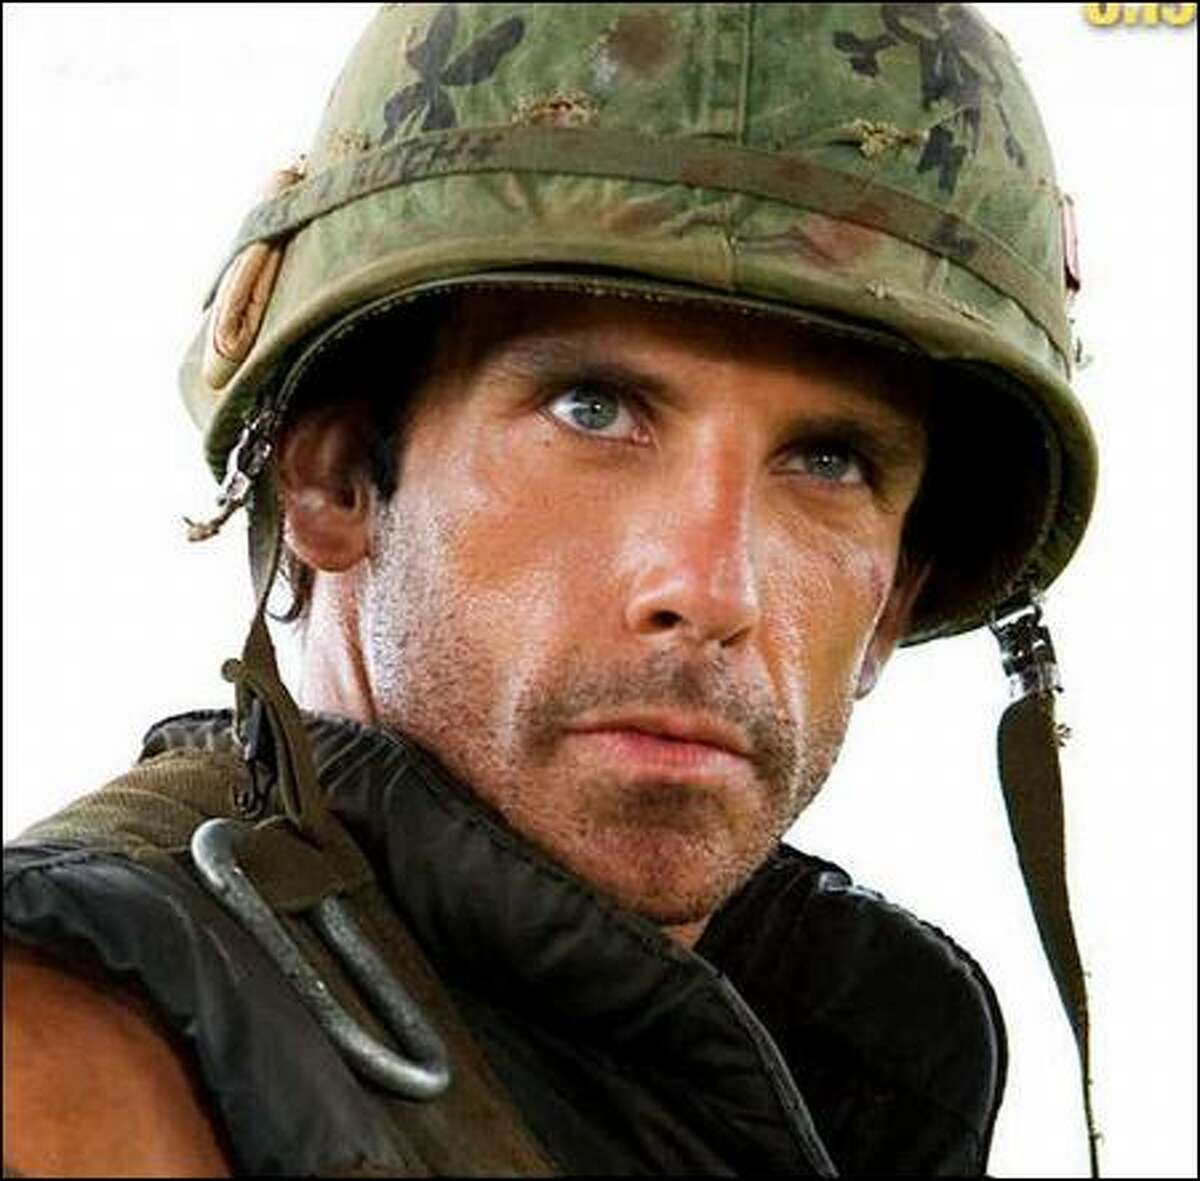 Action star Tugg Speedman (Ben Stiller) needs to make a comeback - his